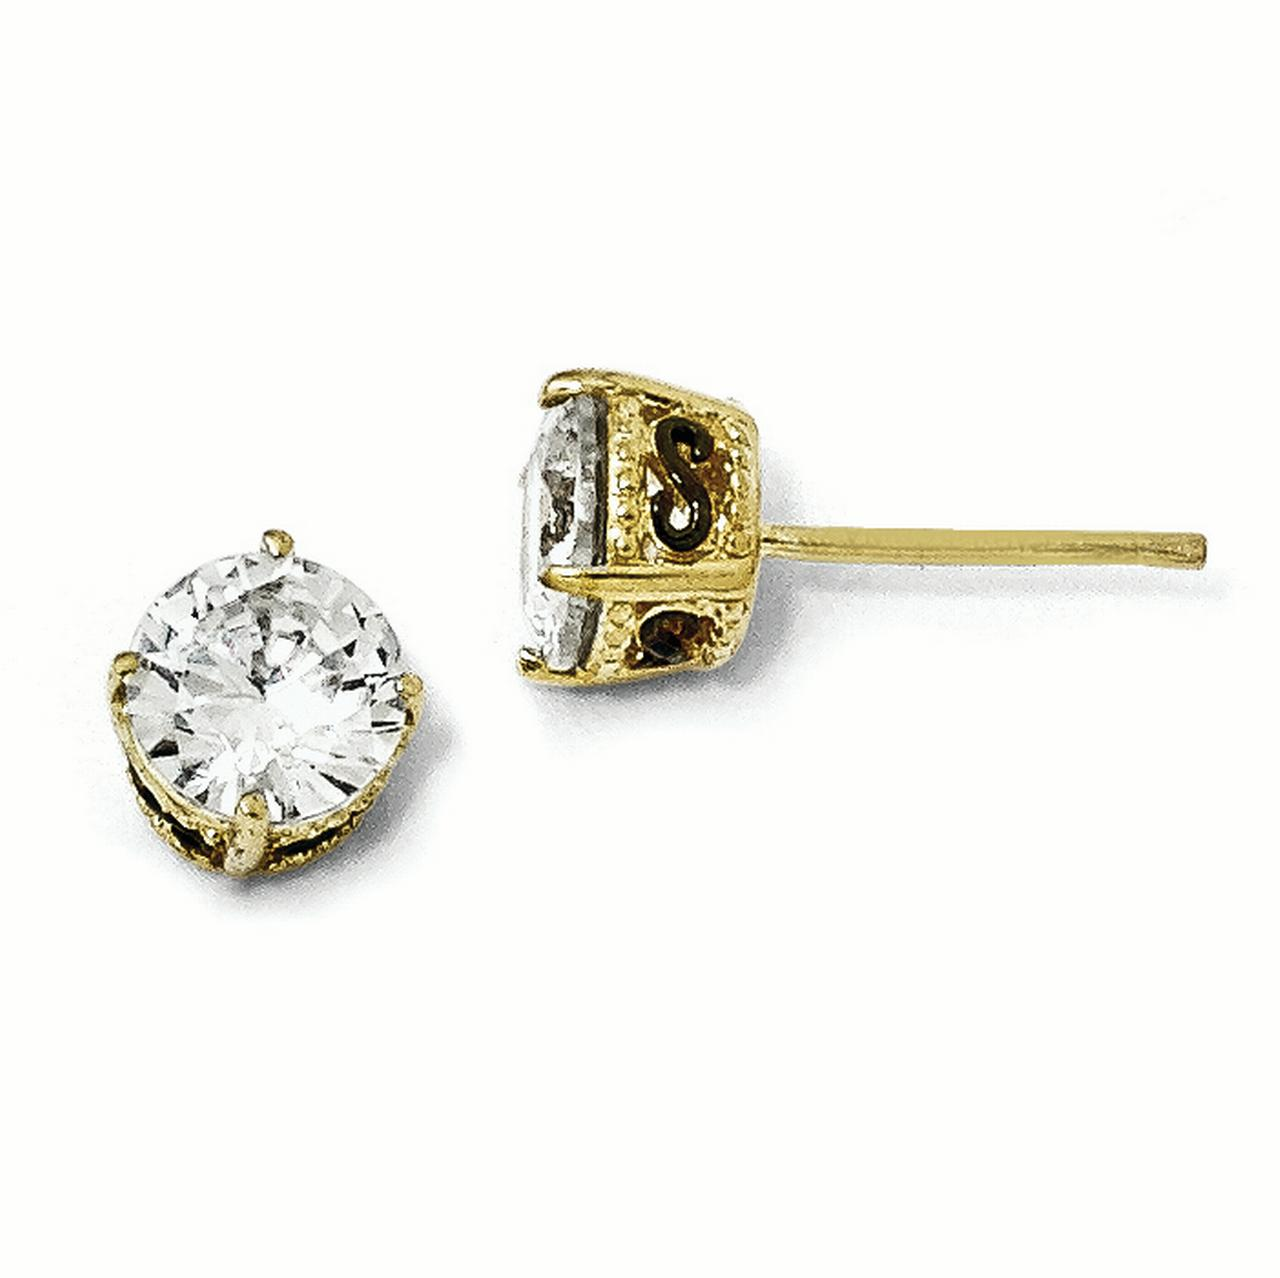 Cheryl M Sterling Silver Gold-plated & Black-plated 6.5mm CZ Stud Earrings